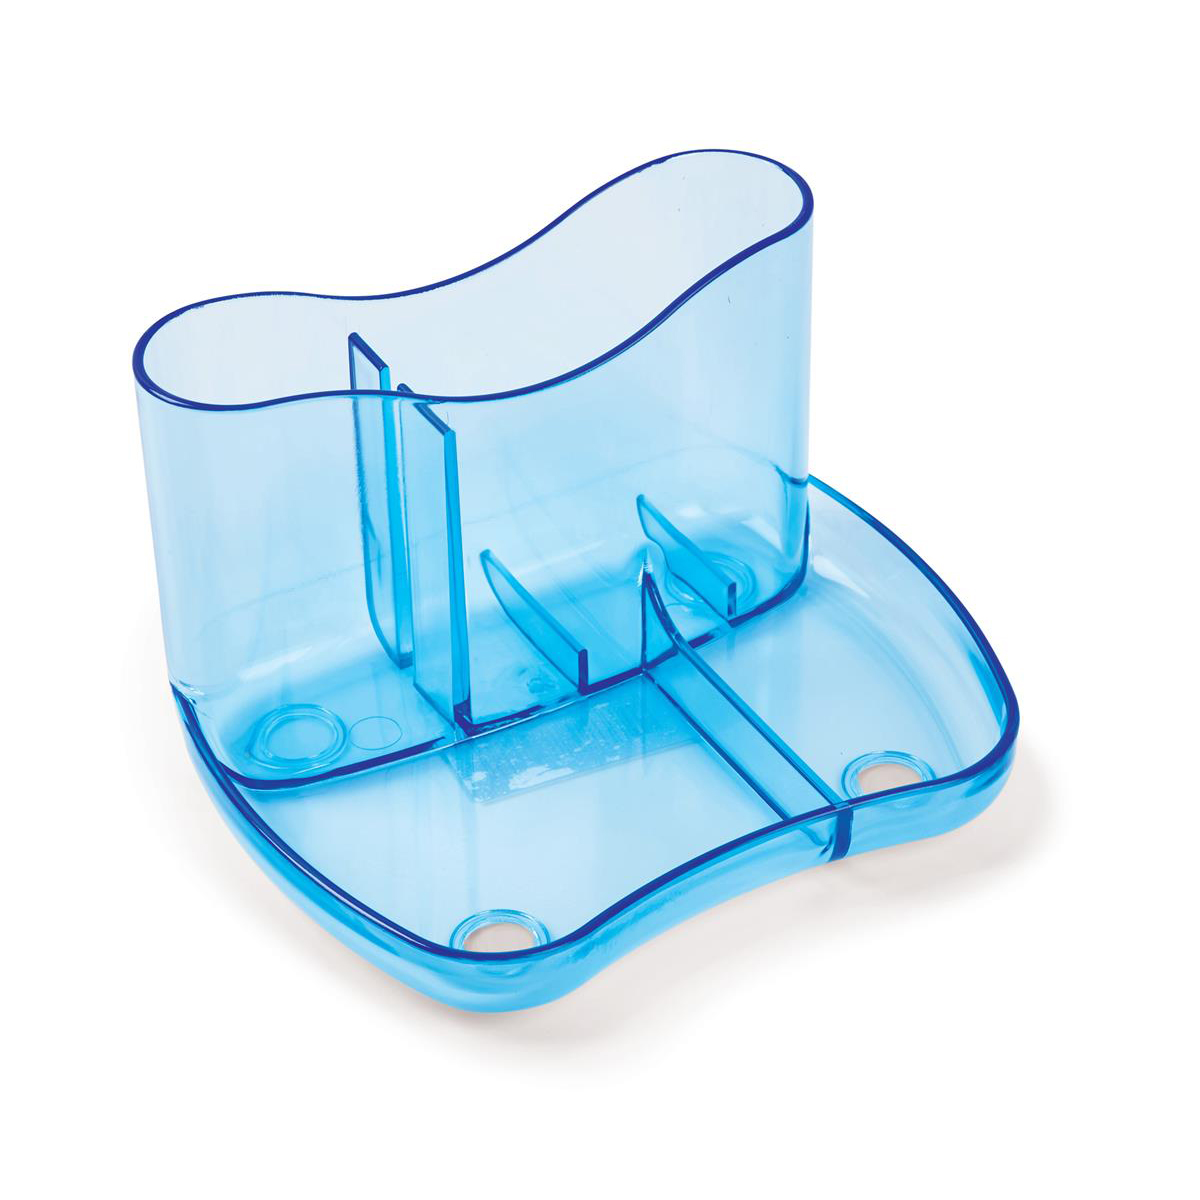 Glass Clear Desk Organiser 4 Compartments 93mm High Glass Clear Blue